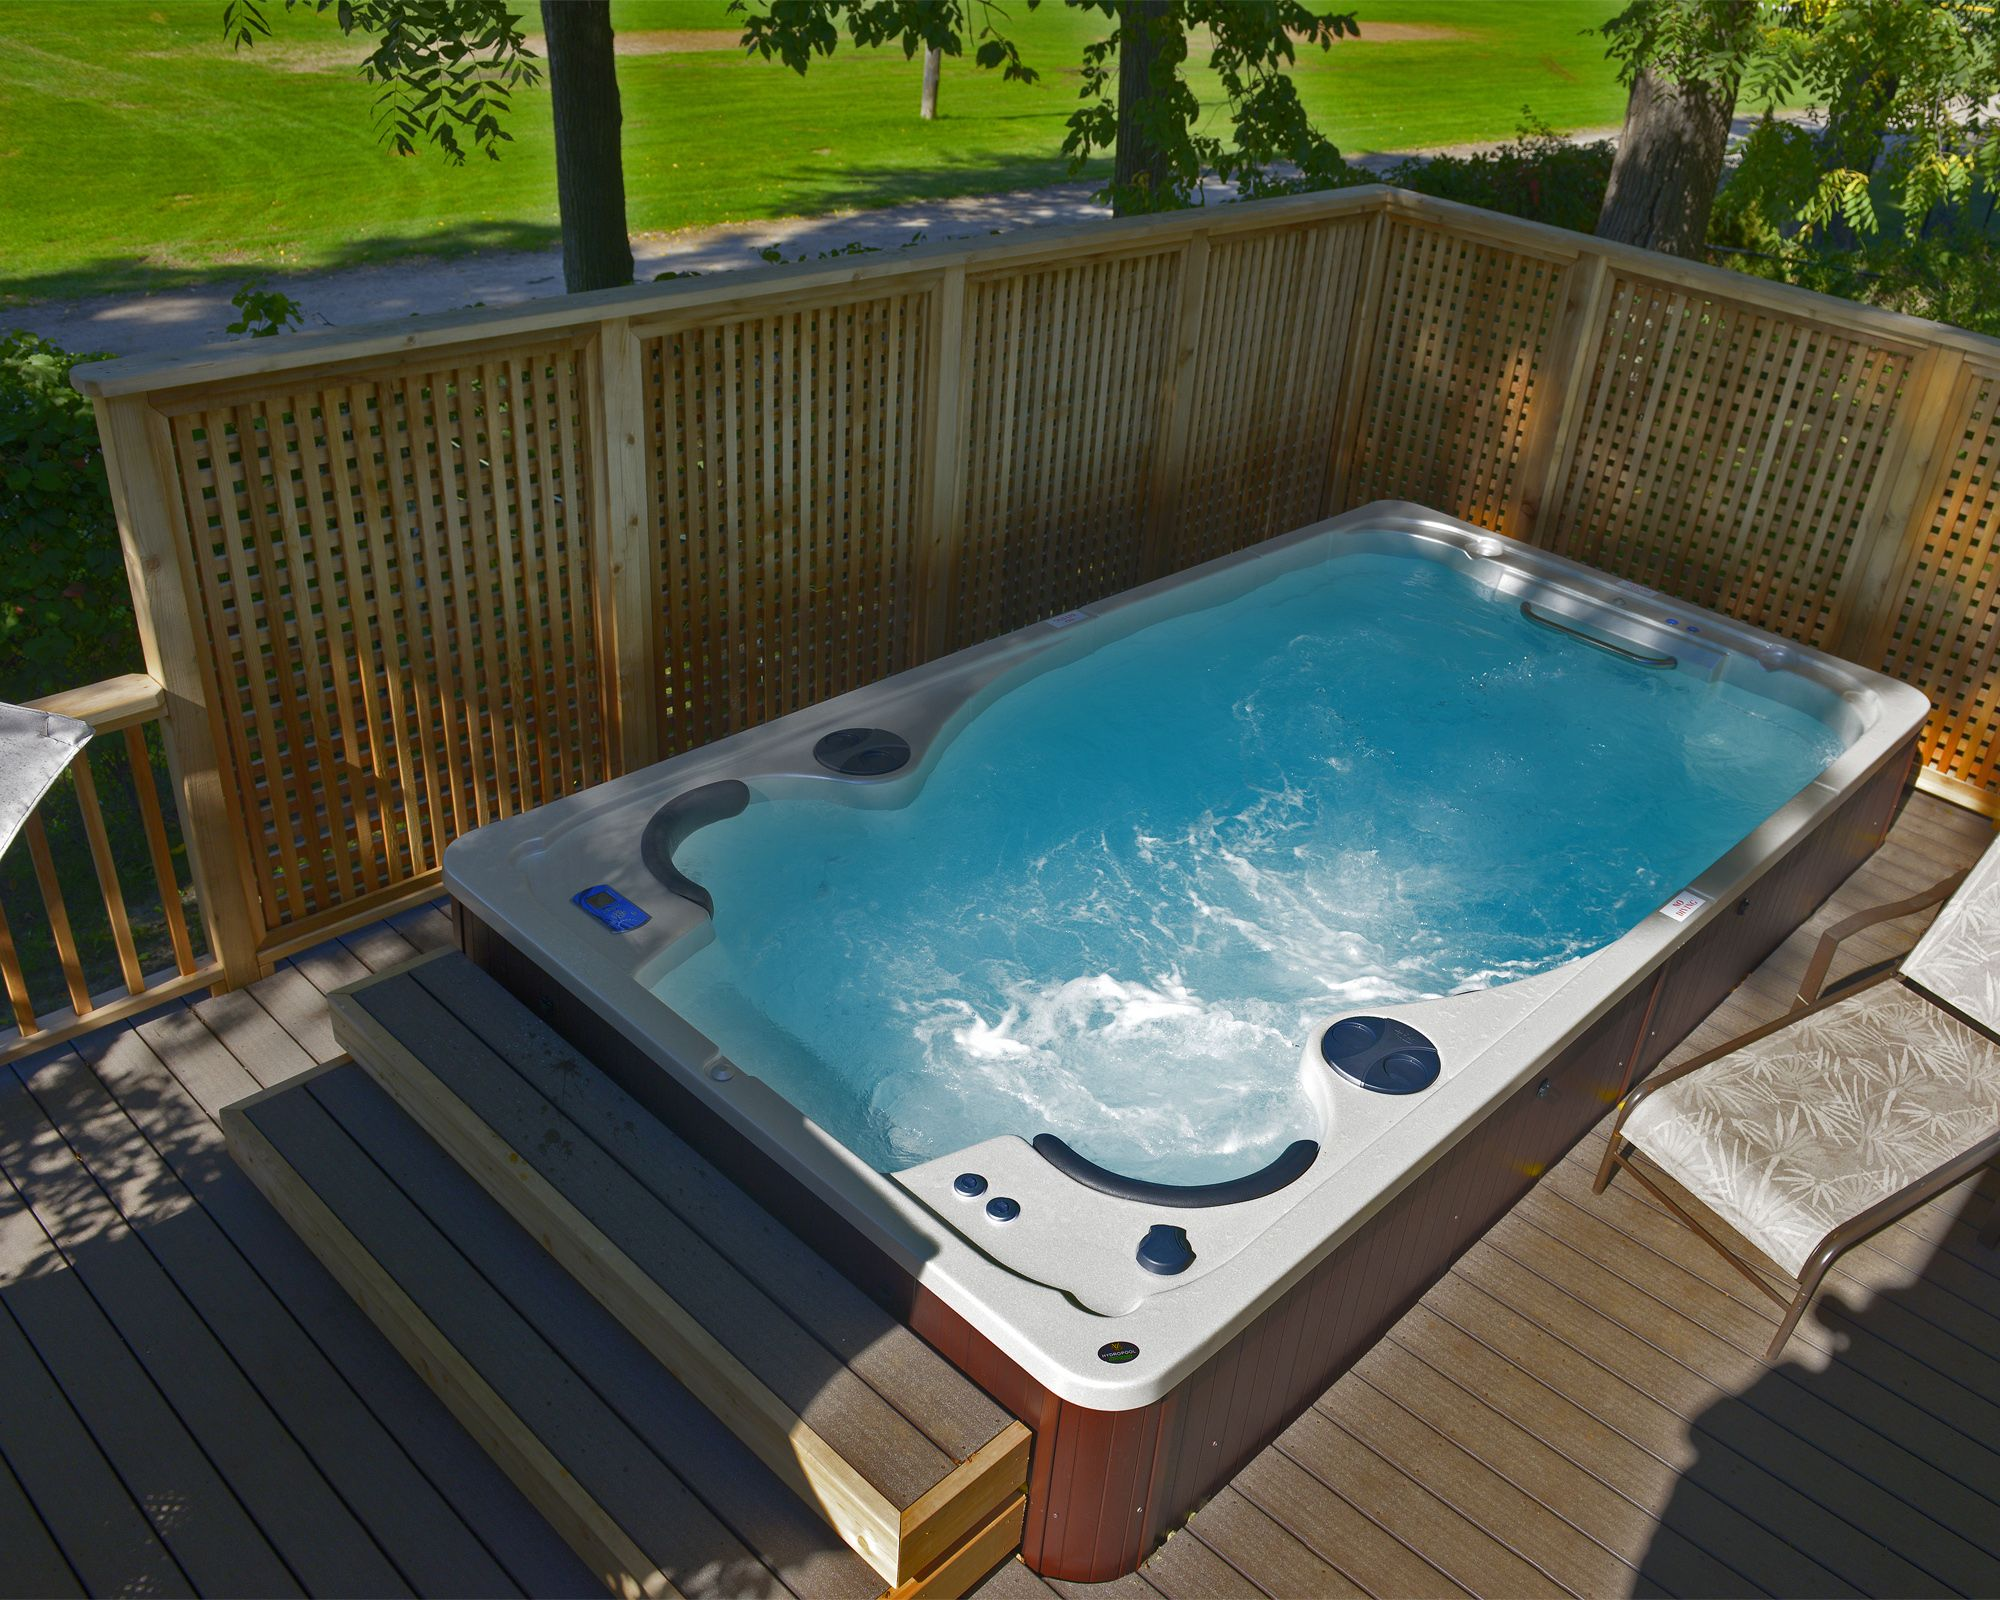 Jacuzzi Endless Pool Hot Tub Energy Saving Tip Installing A Fence Around Your